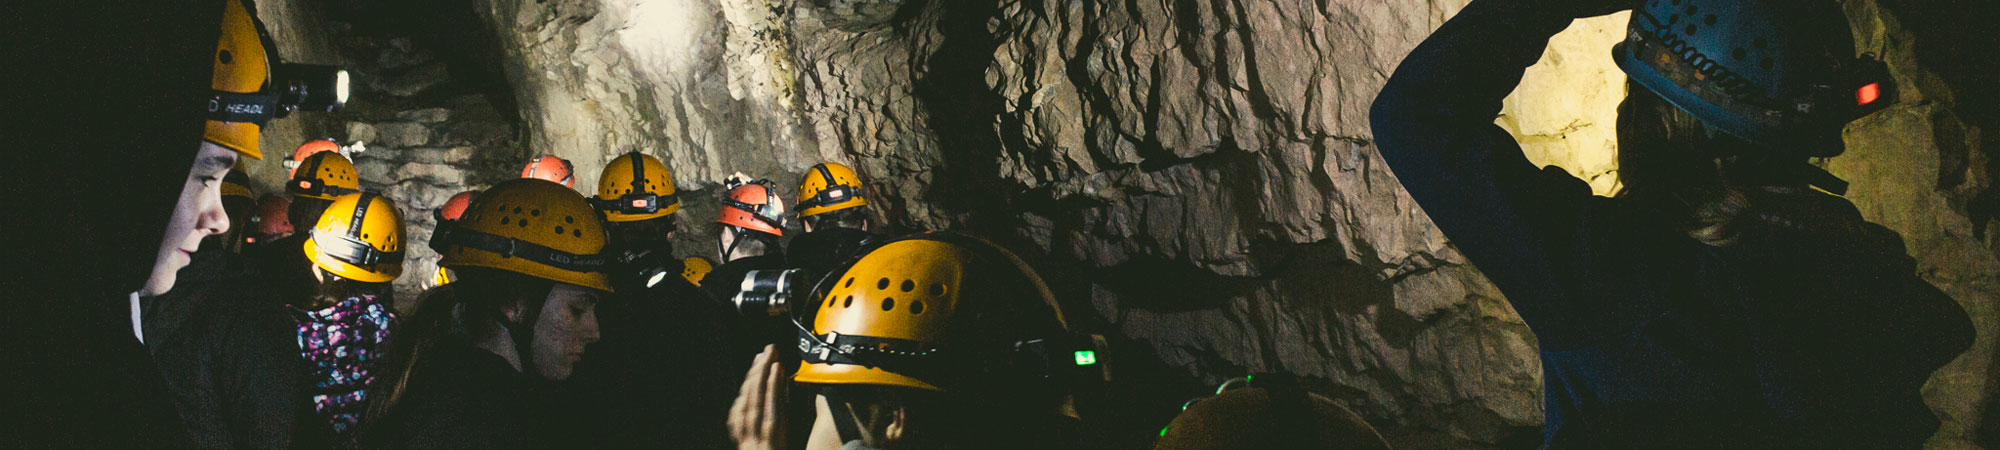 School team building exercise in North Wales mines